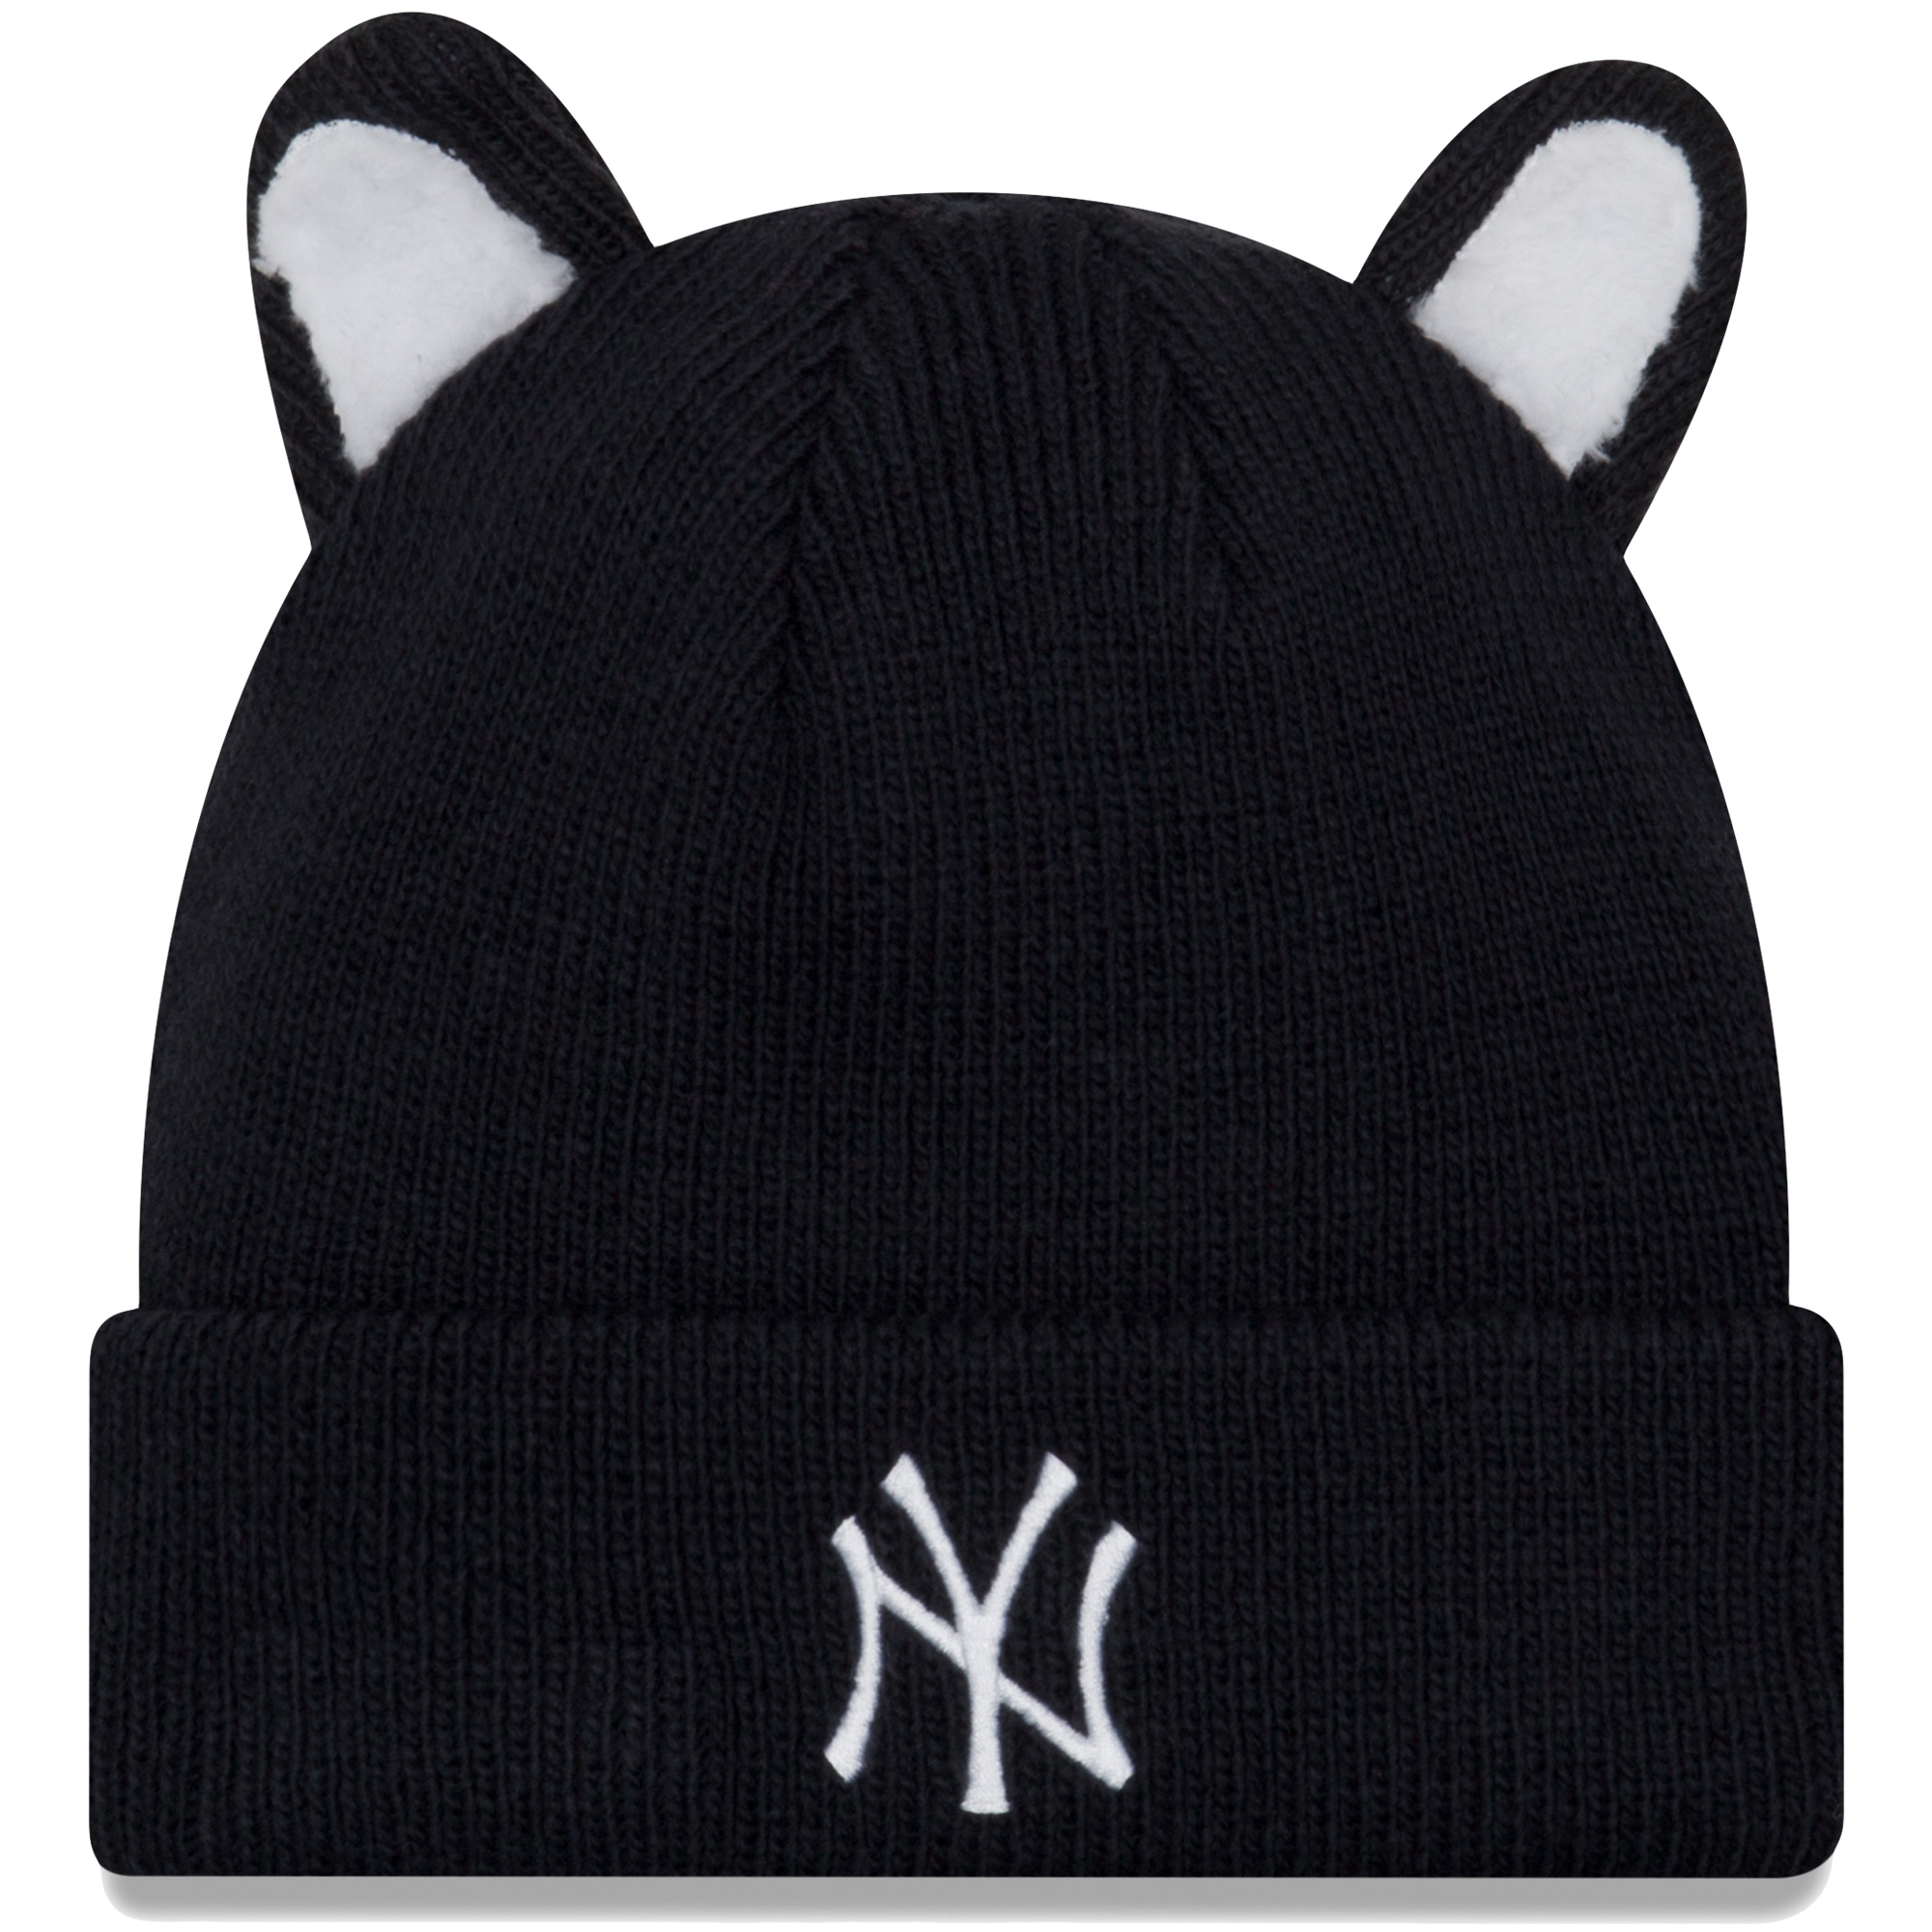 ffa37963f75834 ... reduced new york yankees new era toddler cozy cutie cuffed knit hat  navy osfa f954a 96fd5